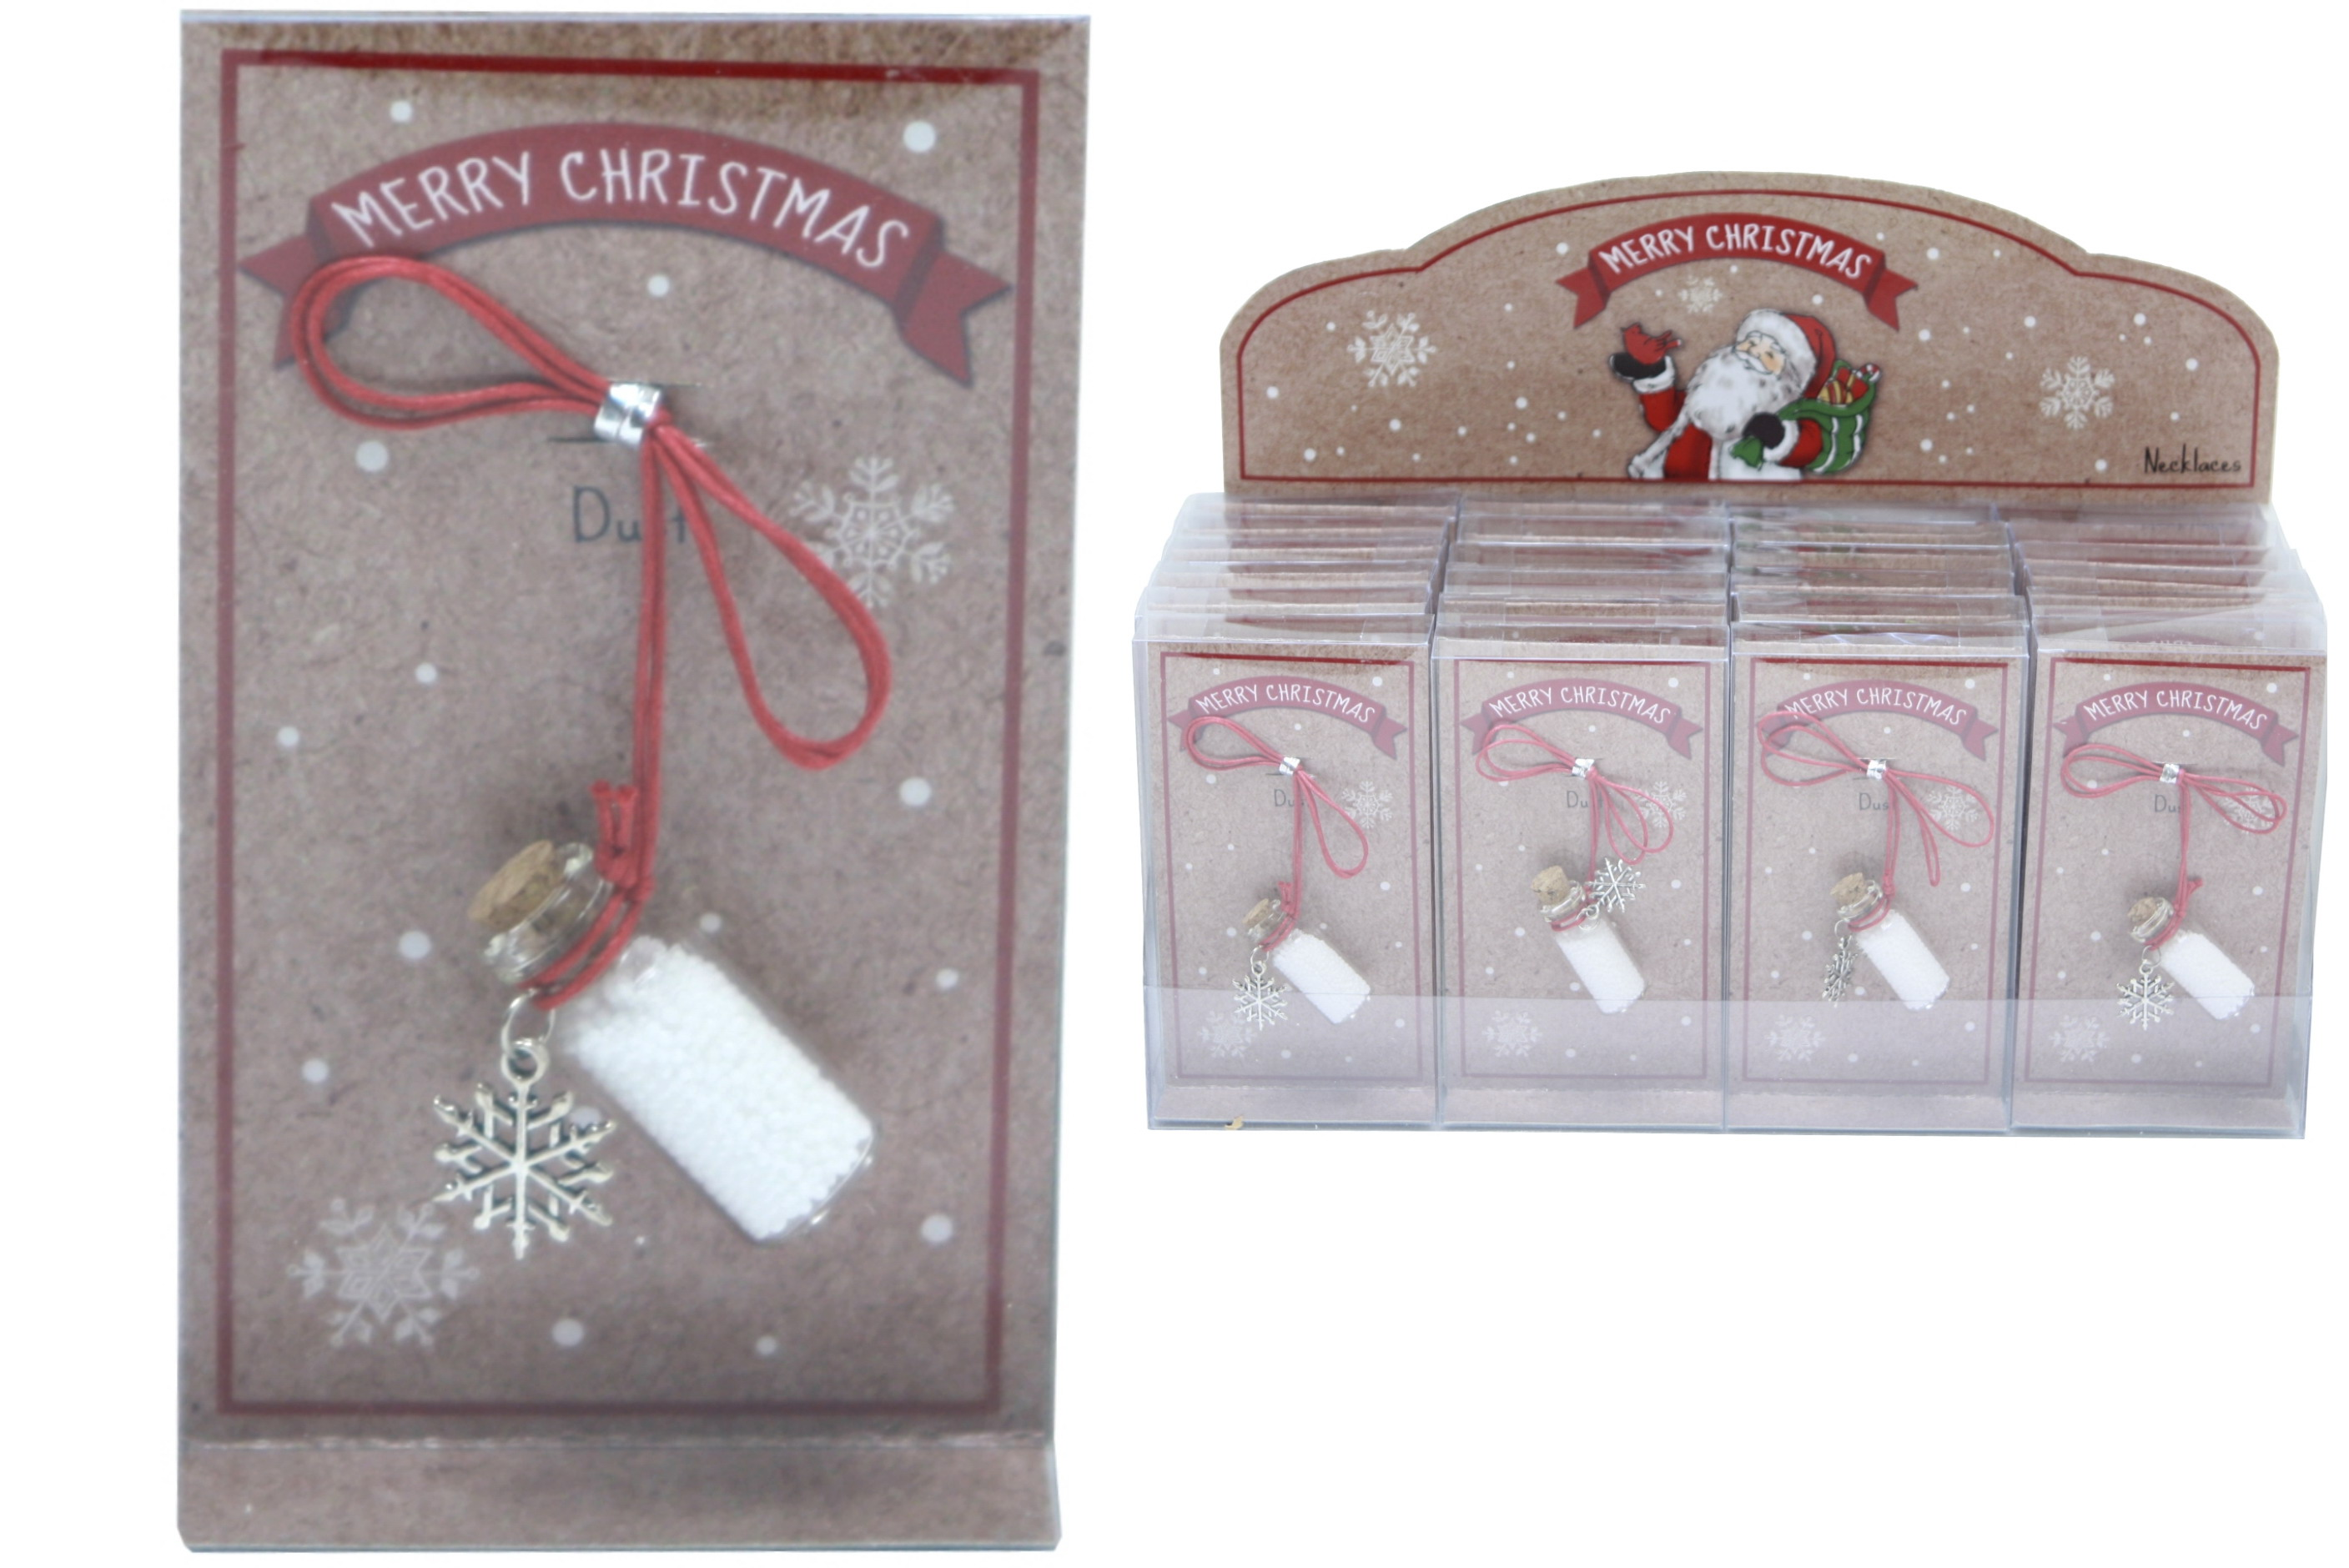 Merry Christmas Snow Dust In Acetate Box / Display Box